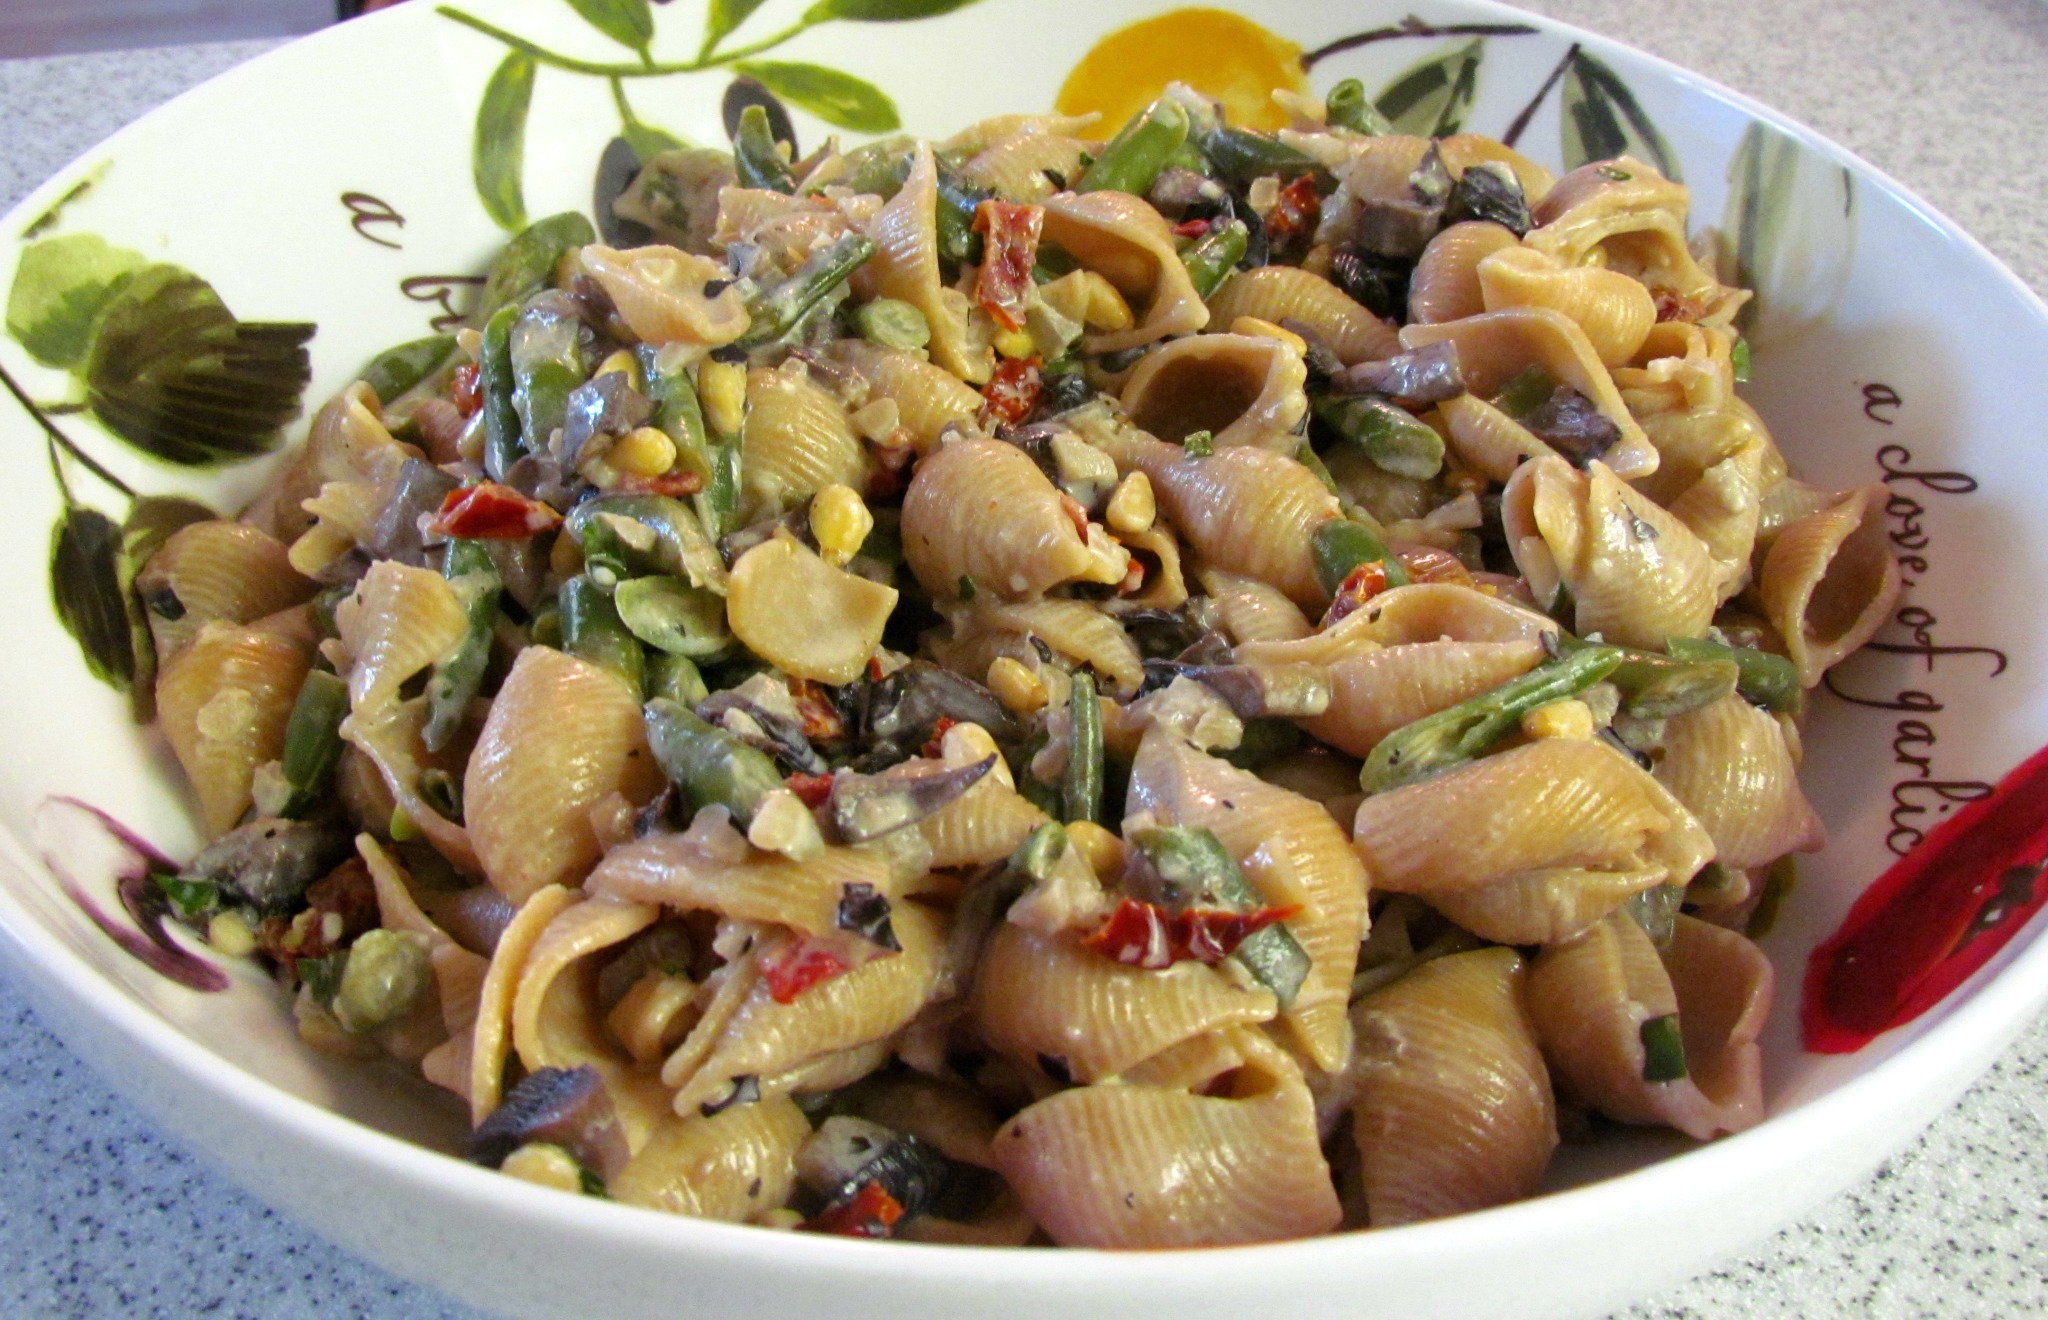 Creamy Pasta Shells with Mushrooms, Green Beans & Pine Nuts